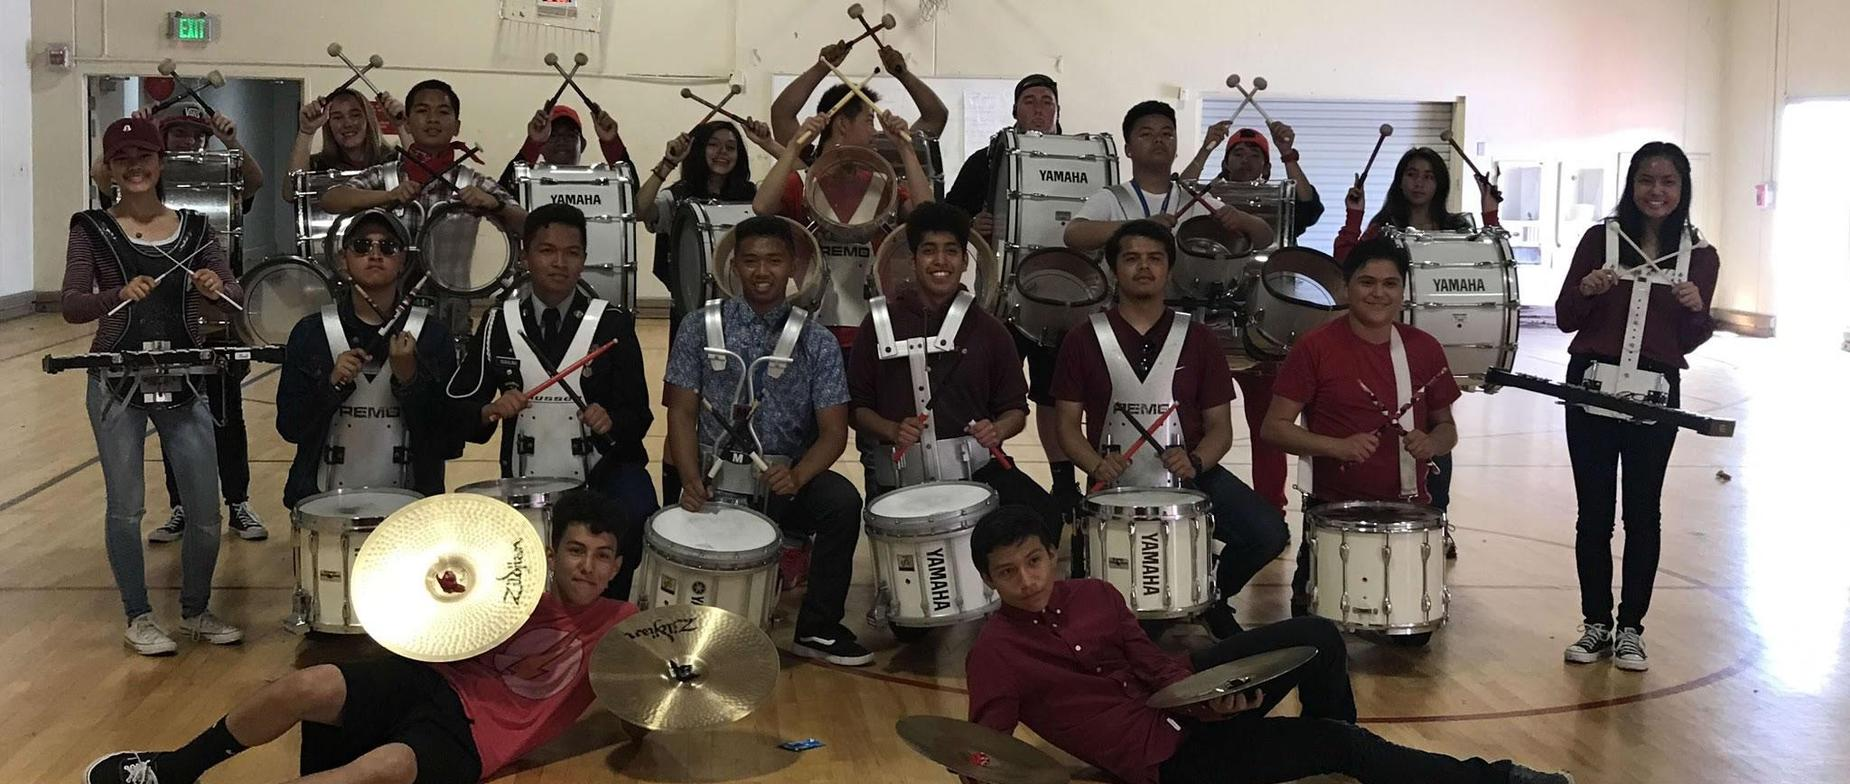 about 30 Seaside High School drum line students both male and female posing for a picture with their drum line gear